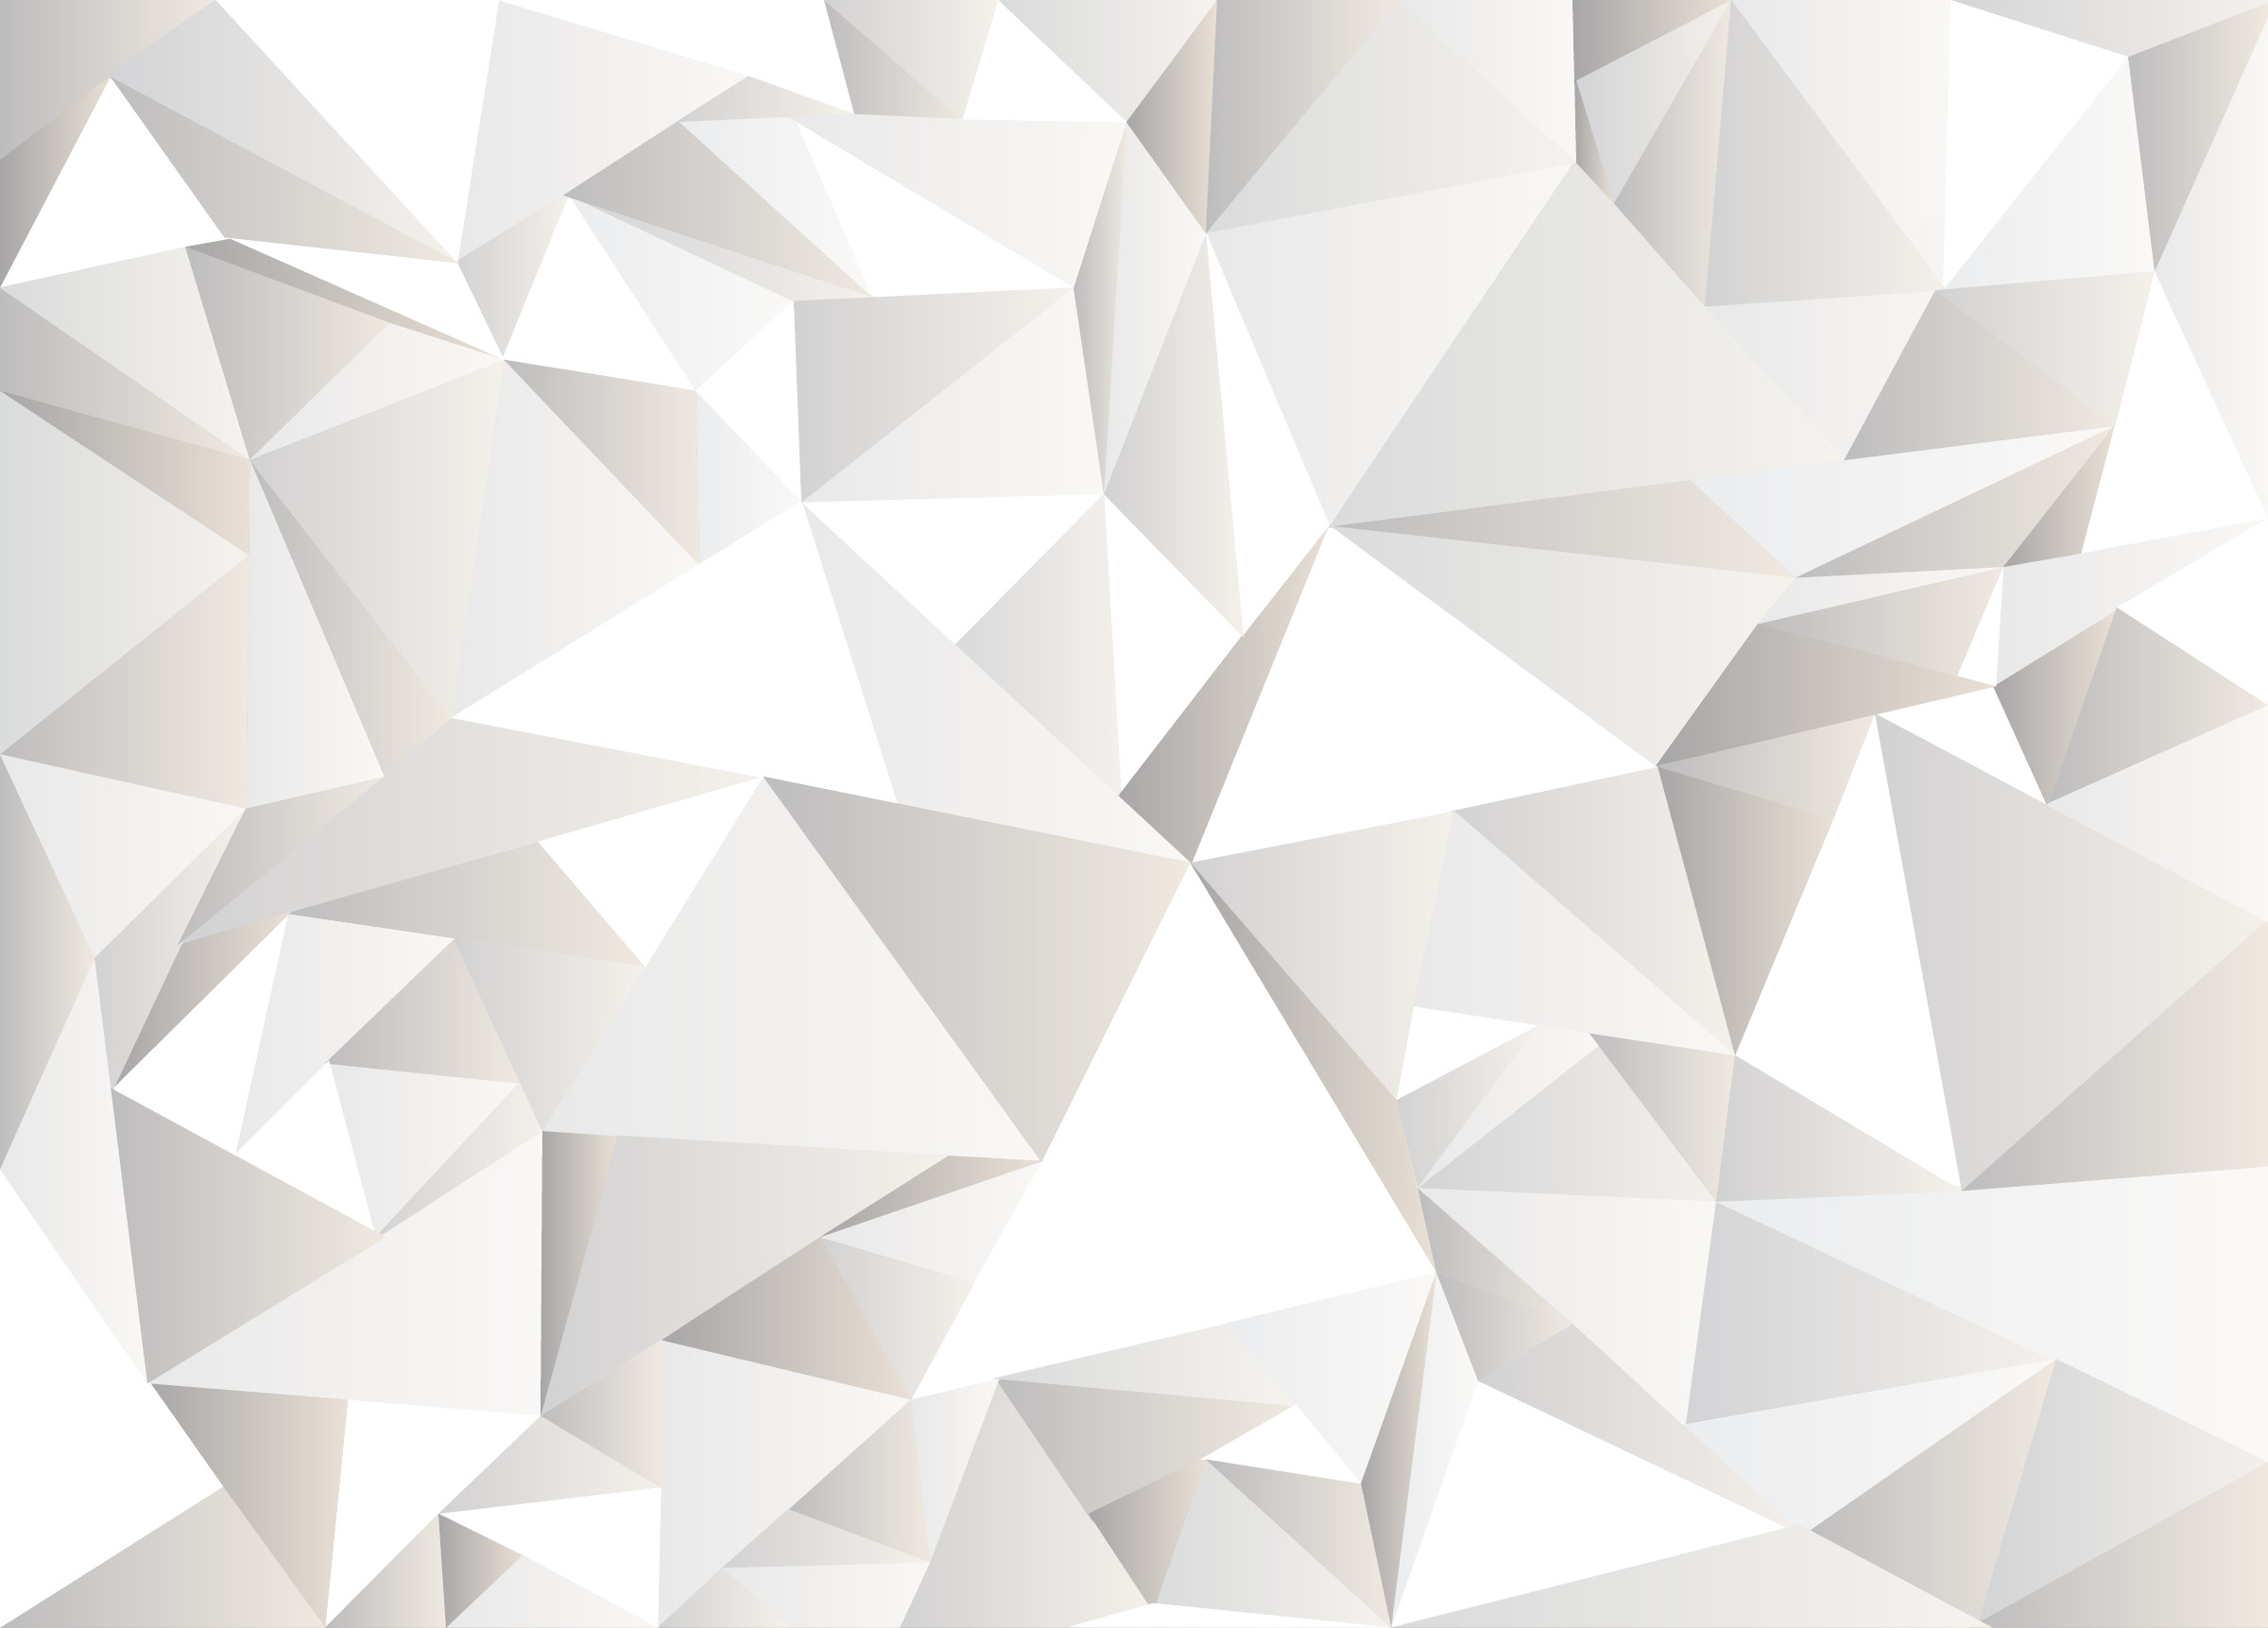 White Abstract Wallpaper 68 images 2400x1723